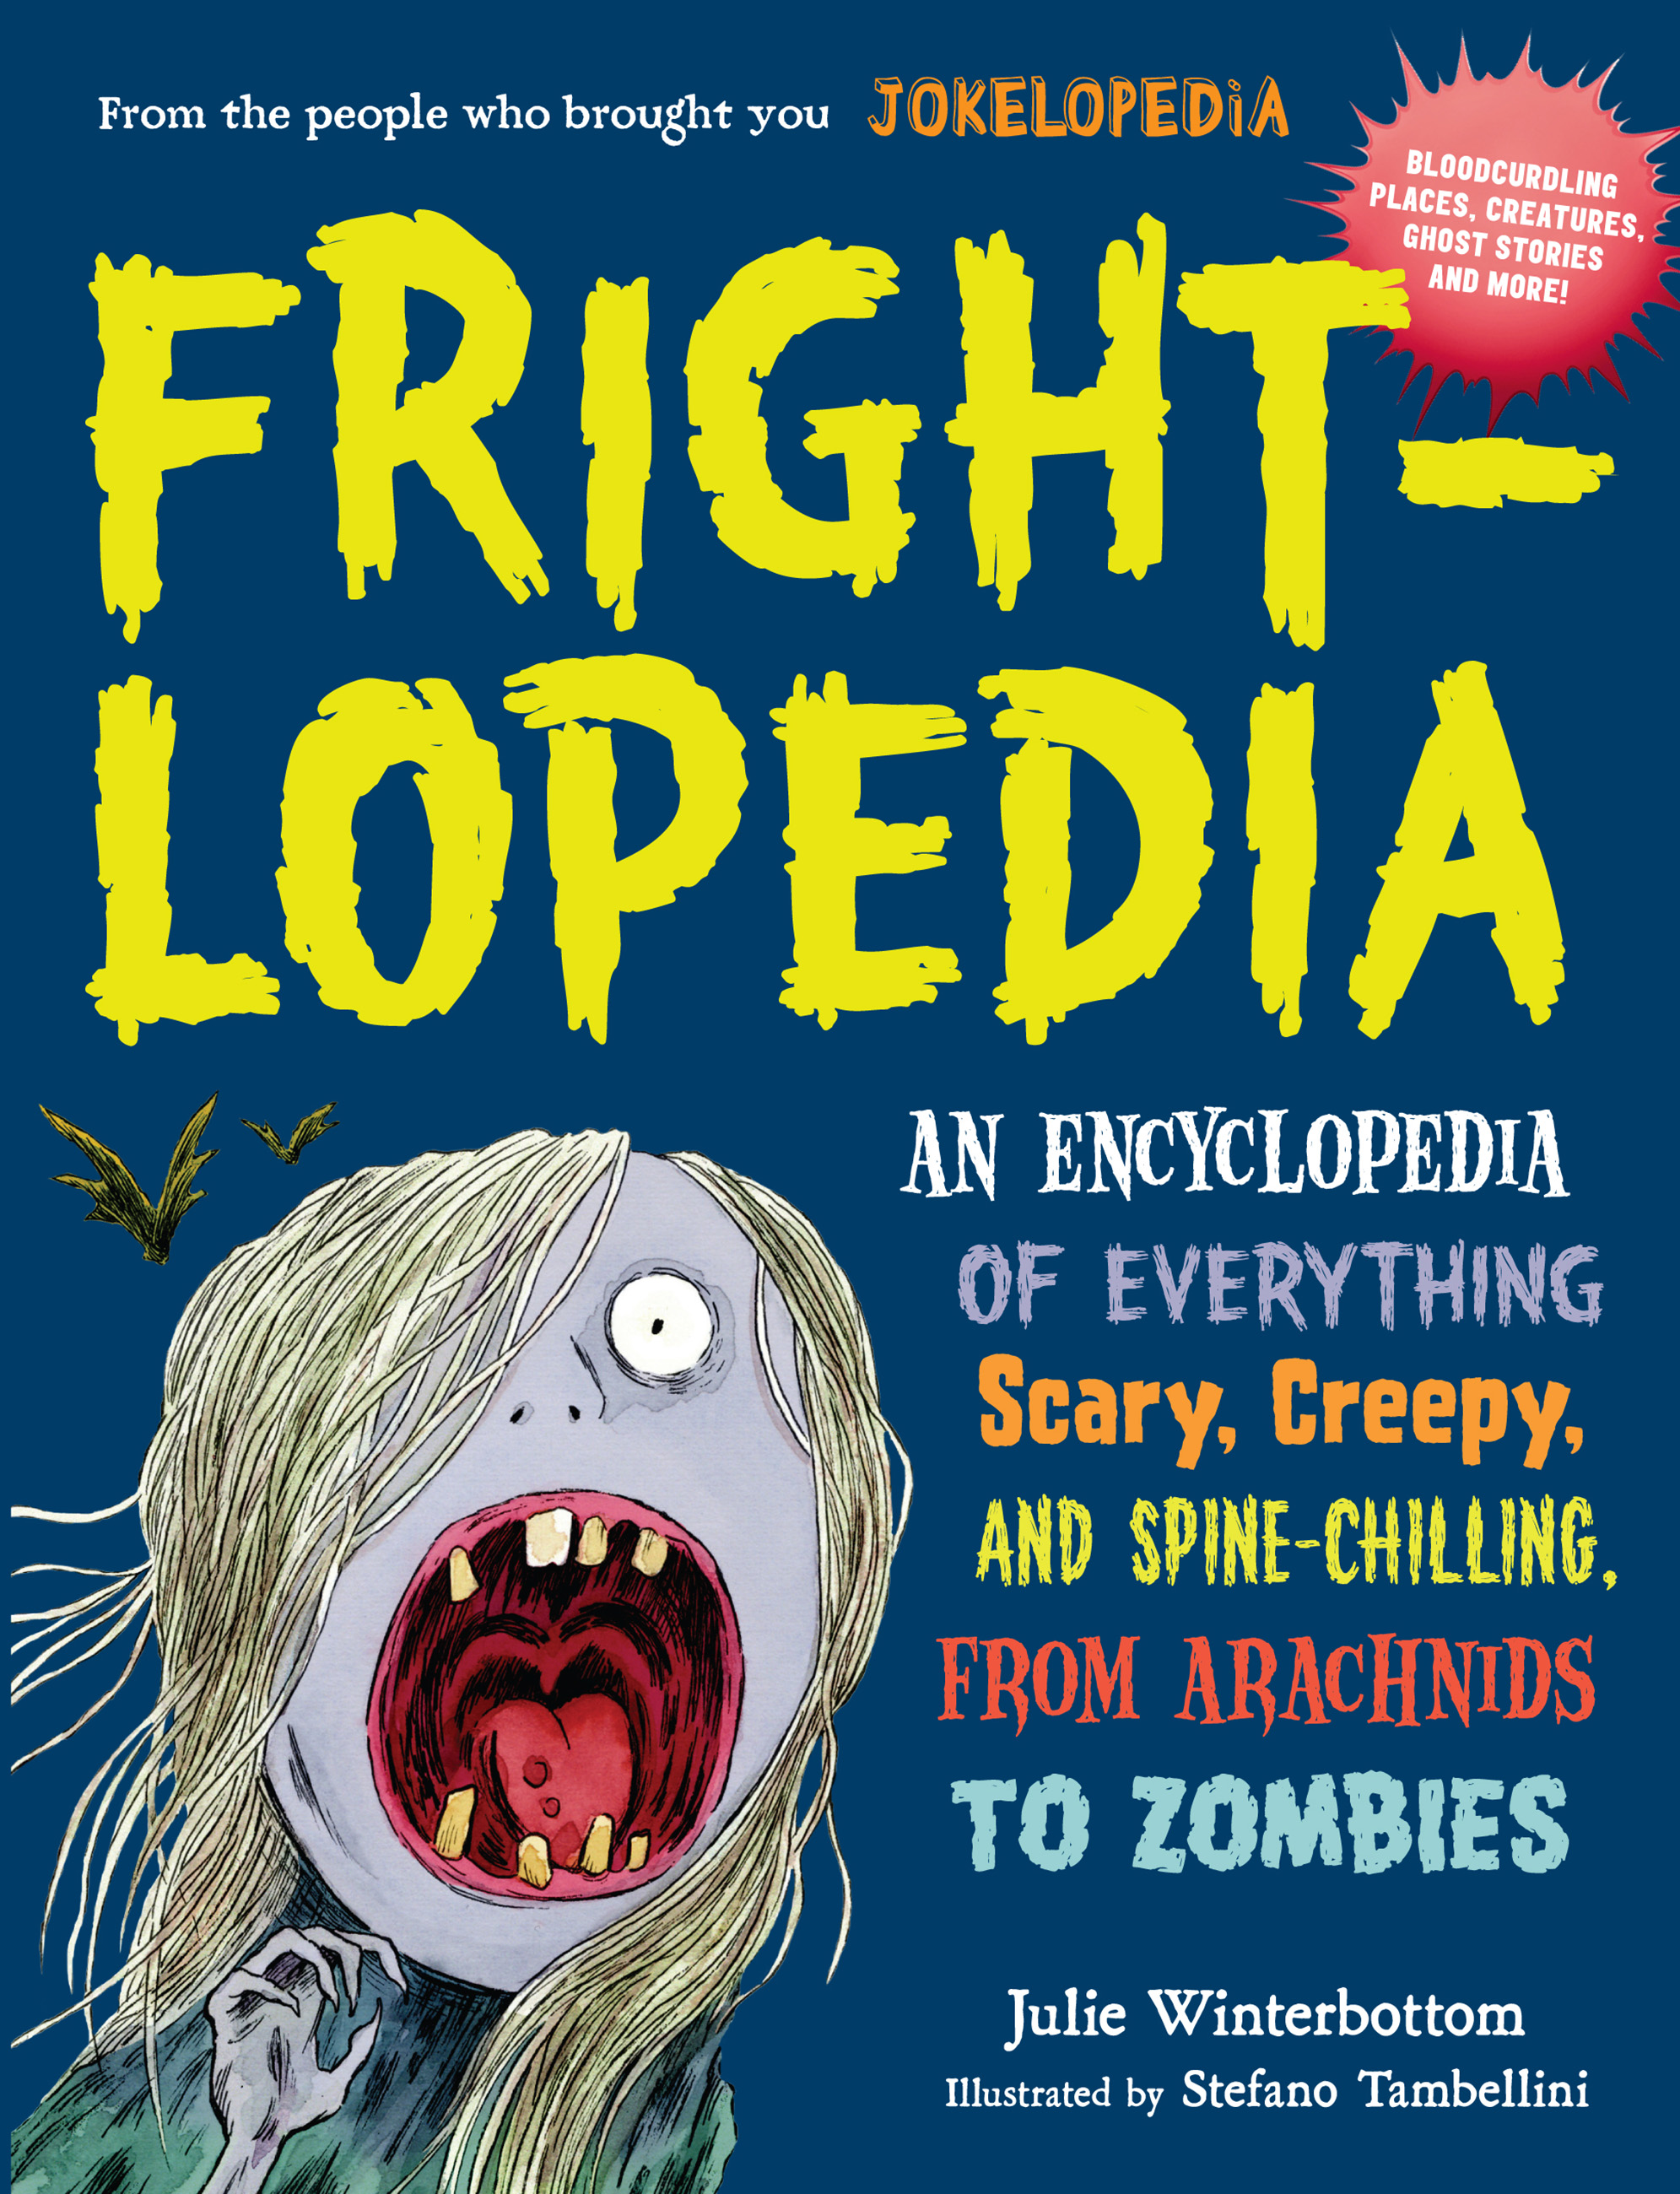 Frightlopedia An Encyclopedia of Everything Scary, Creepy, and Spine-Chilling, from Arachnids to Zombies